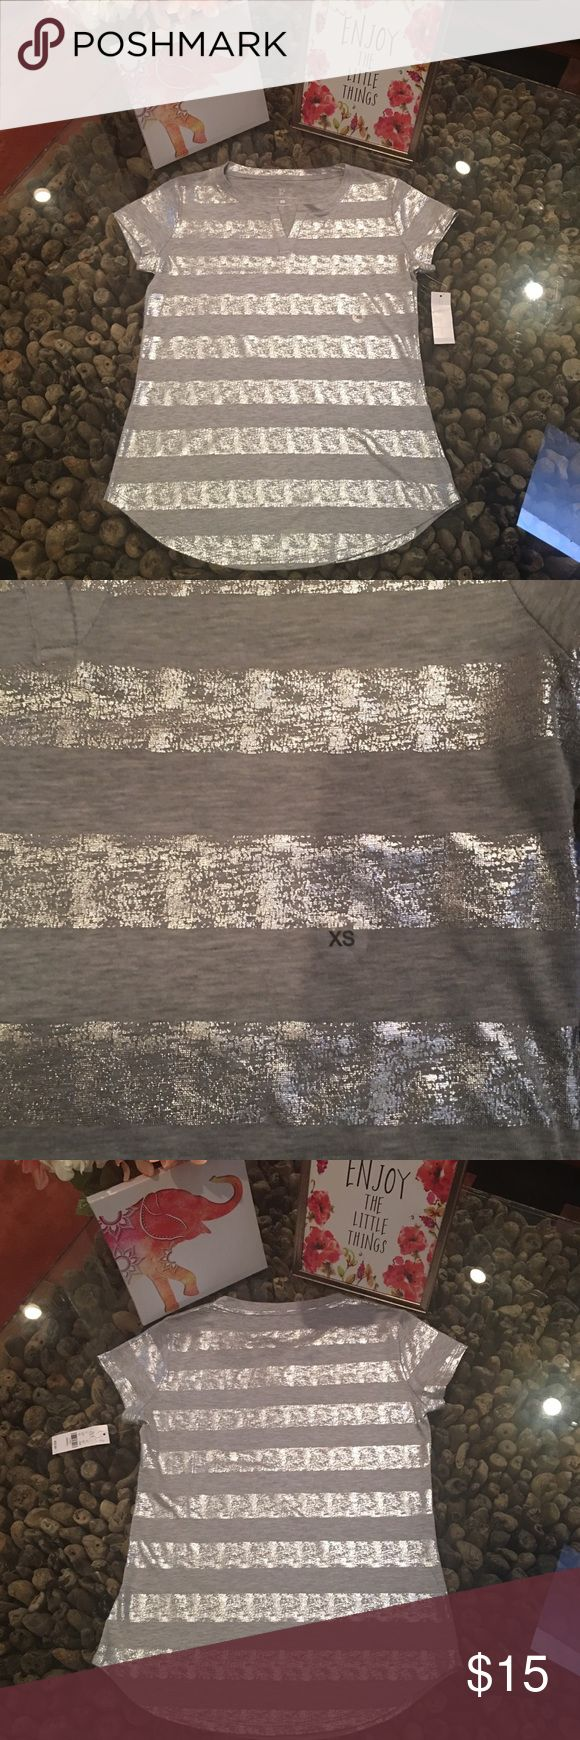 💙2 for $15💙 Split neck metallic tee - NY & Co NWT NY & Co - Split neck metallic striped tee. 100% cotton.  Shirt is gray with silver metallic stripes. New York & Company Tops Tees - Short Sleeve